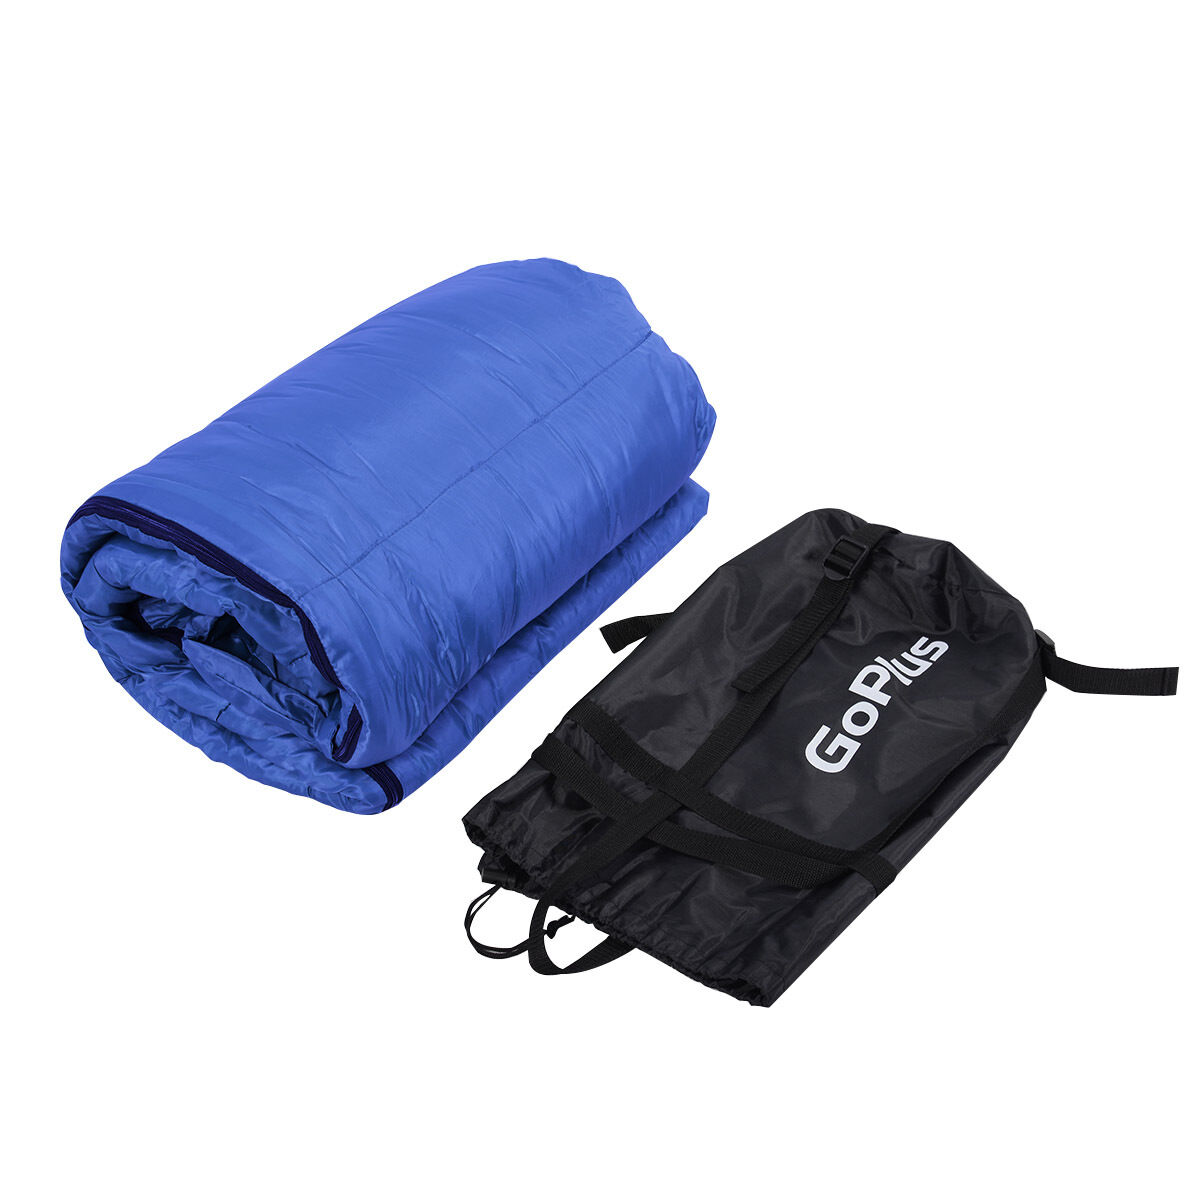 New-Mummy-Waterproof-Outdoor-Sleeping-Bag-Camping-Travel-Hiking-W-Carrying-Bag thumbnail 10